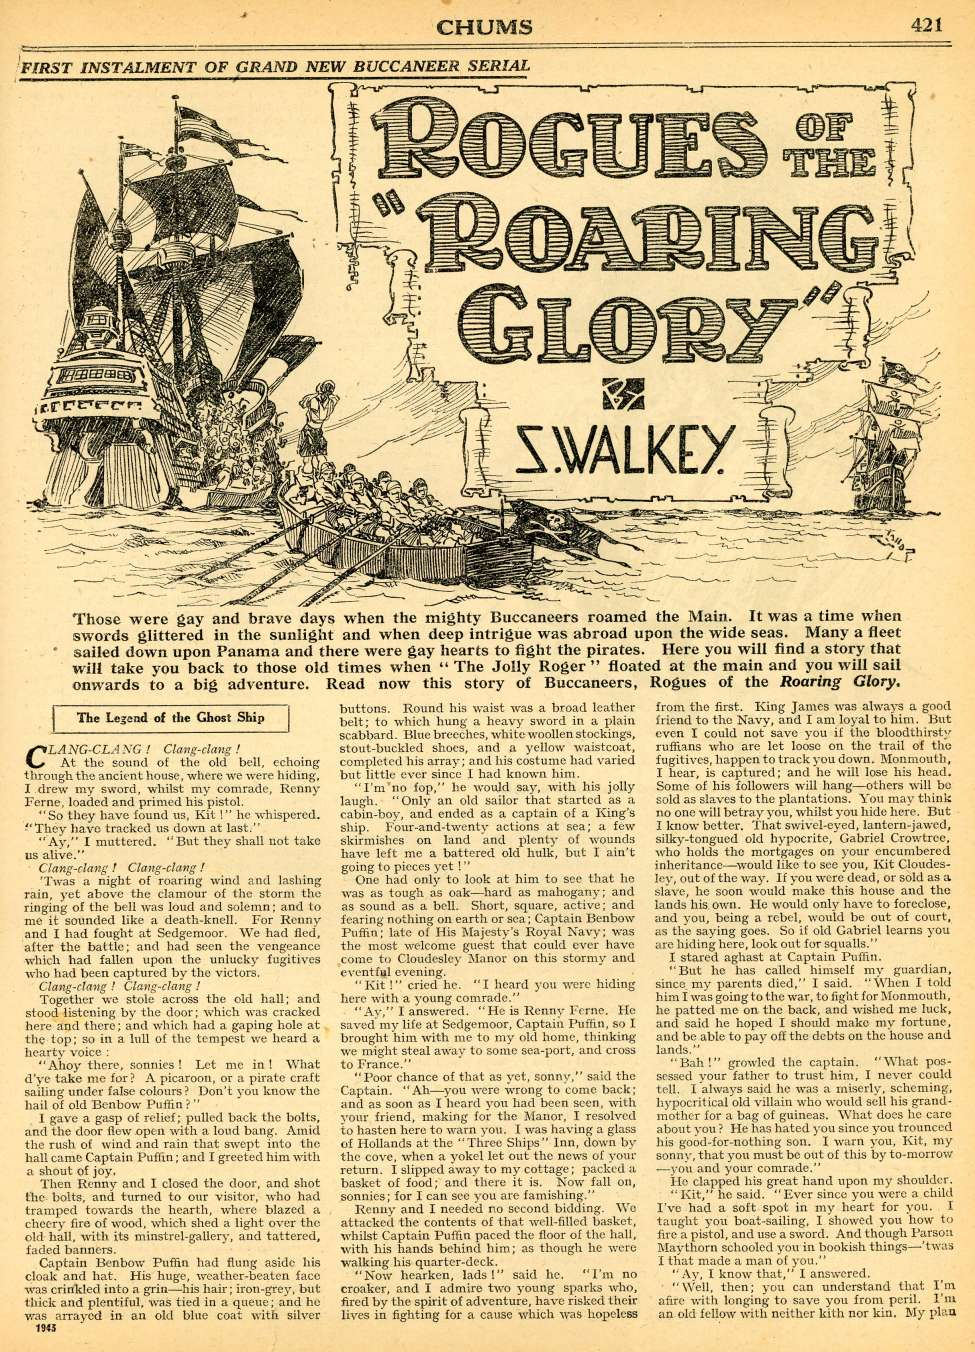 Comic Book Cover For Chums 1930-31 Serial - Rogues of the Roaring Glory by S. Walkey